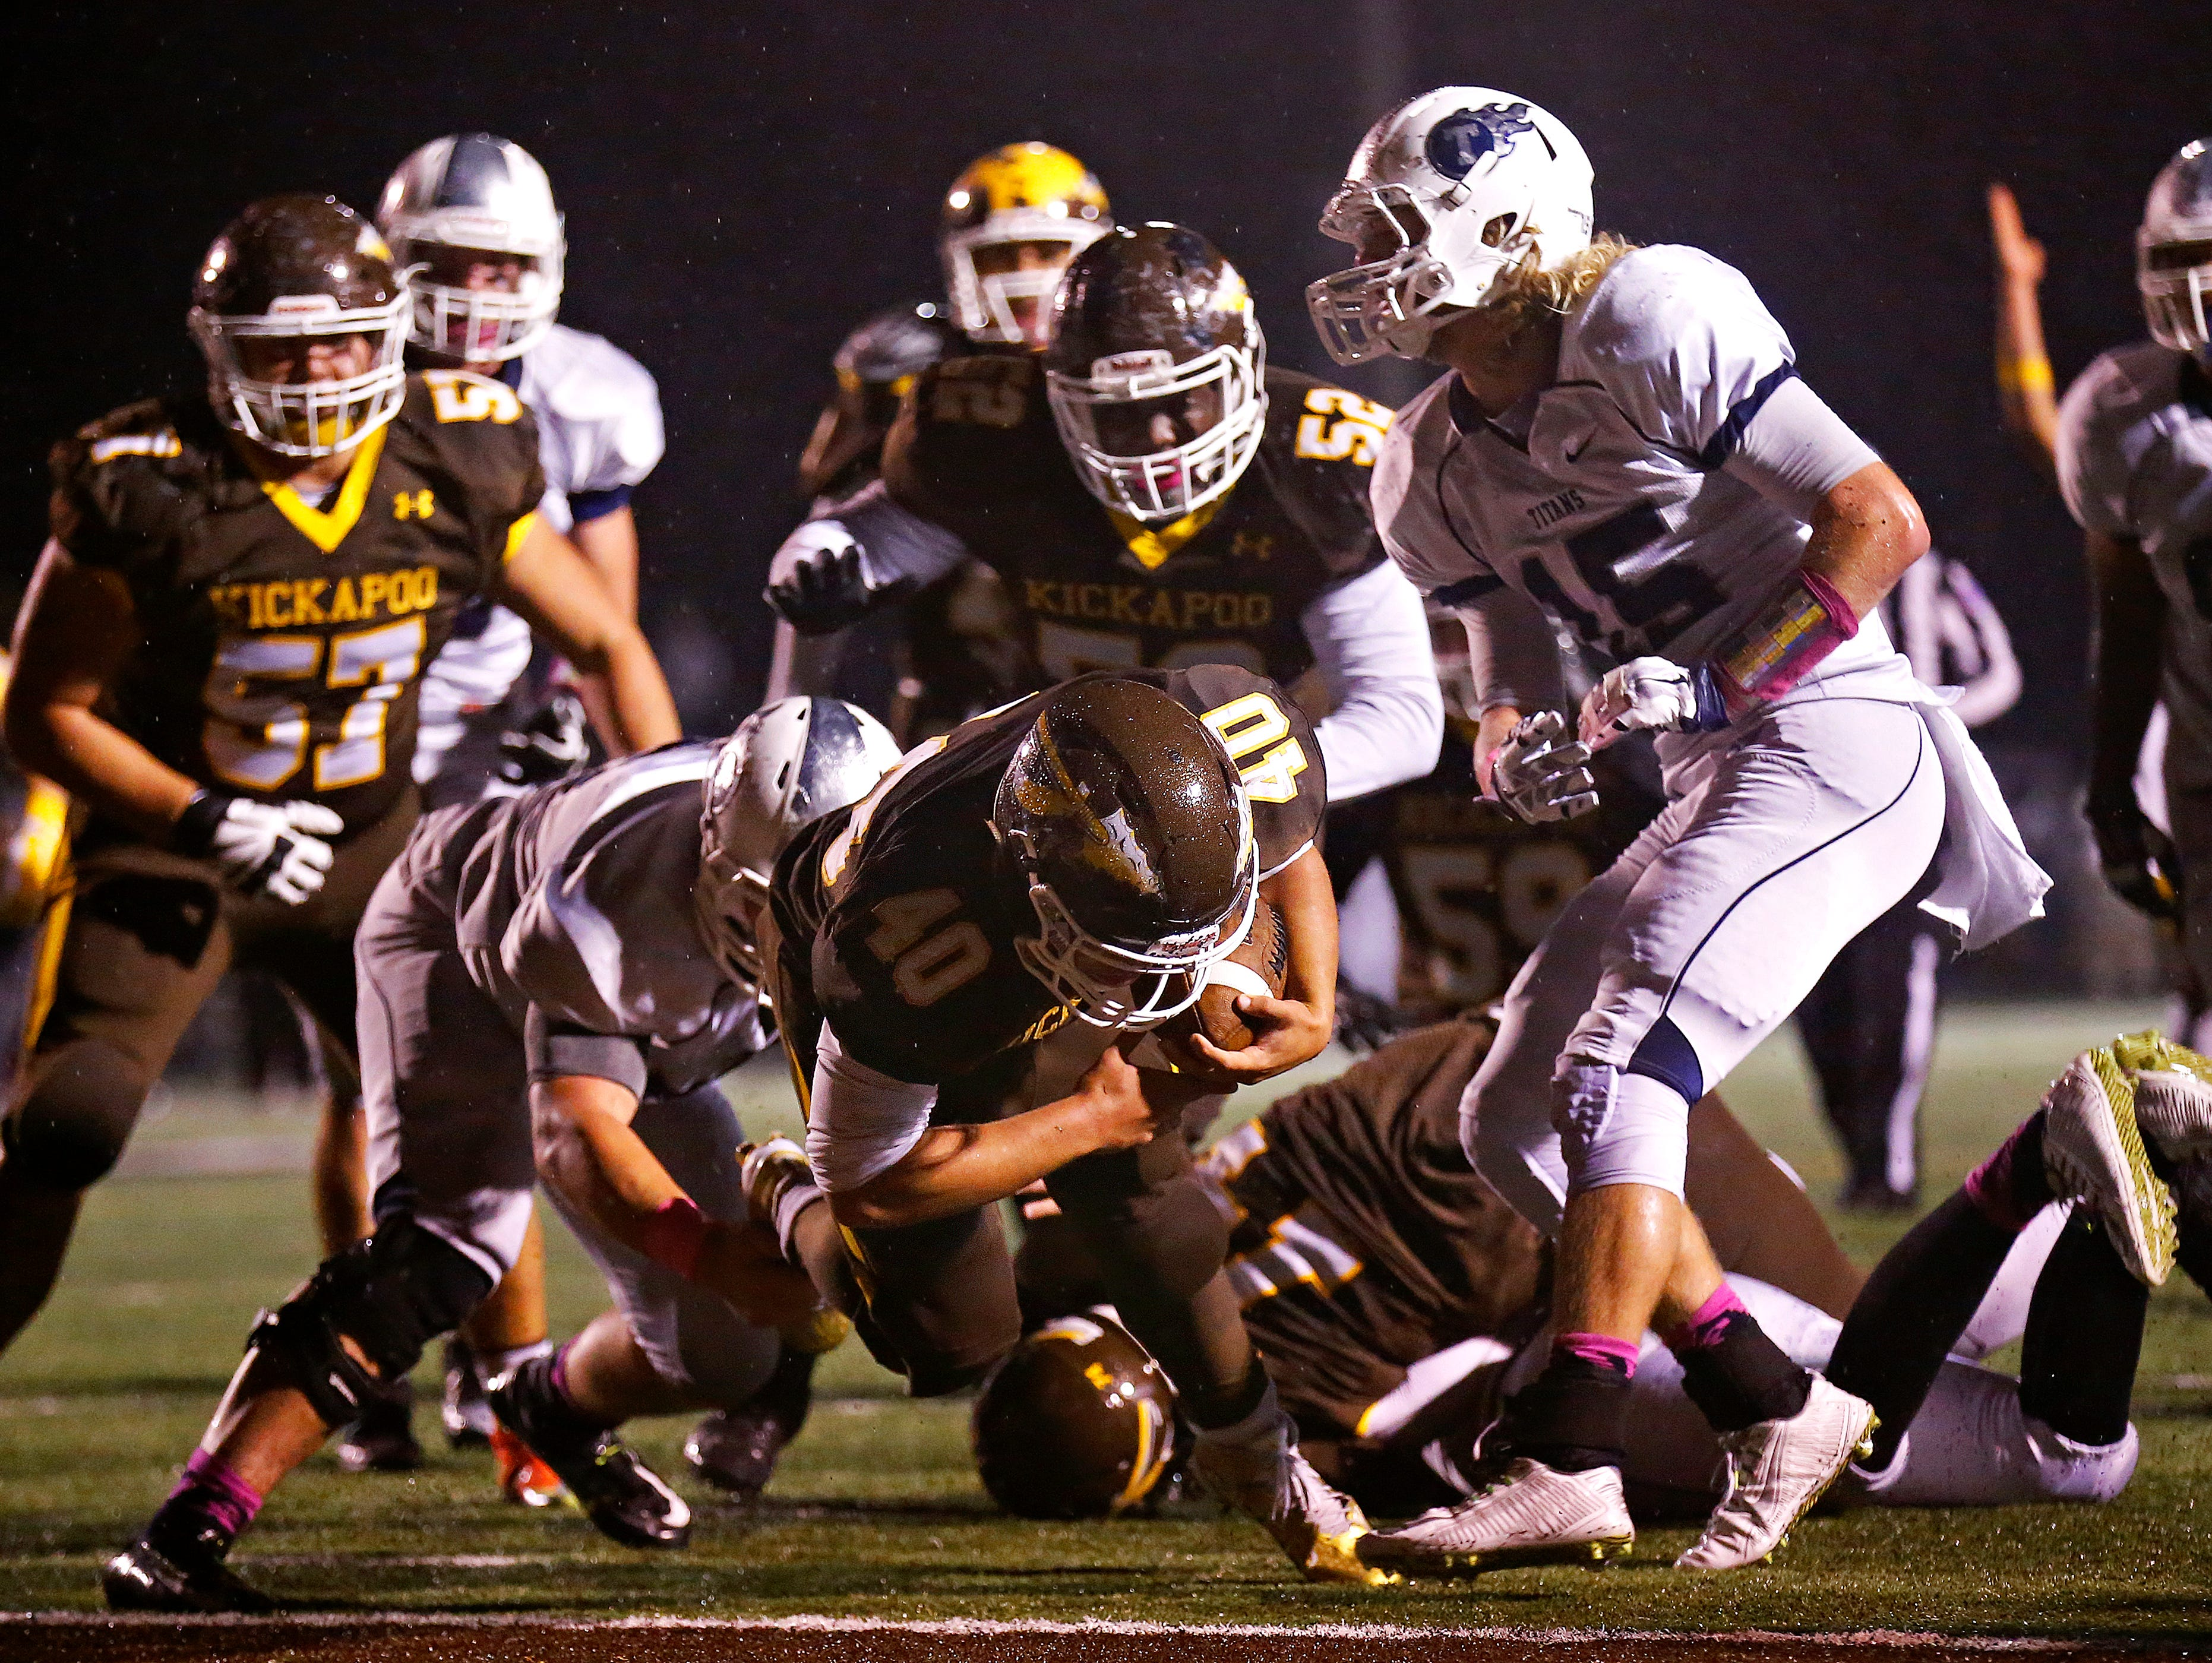 Kickapoo High School running back Malachi Stout (40) makes his way to the end zone for a touchdown during third quarter action of the Chiefs' game against Lee's Summit West High School at Pottenger Stadium in Springfield, Mo. on Oct. 30, 2015. Kickapoo won the game 26-7.